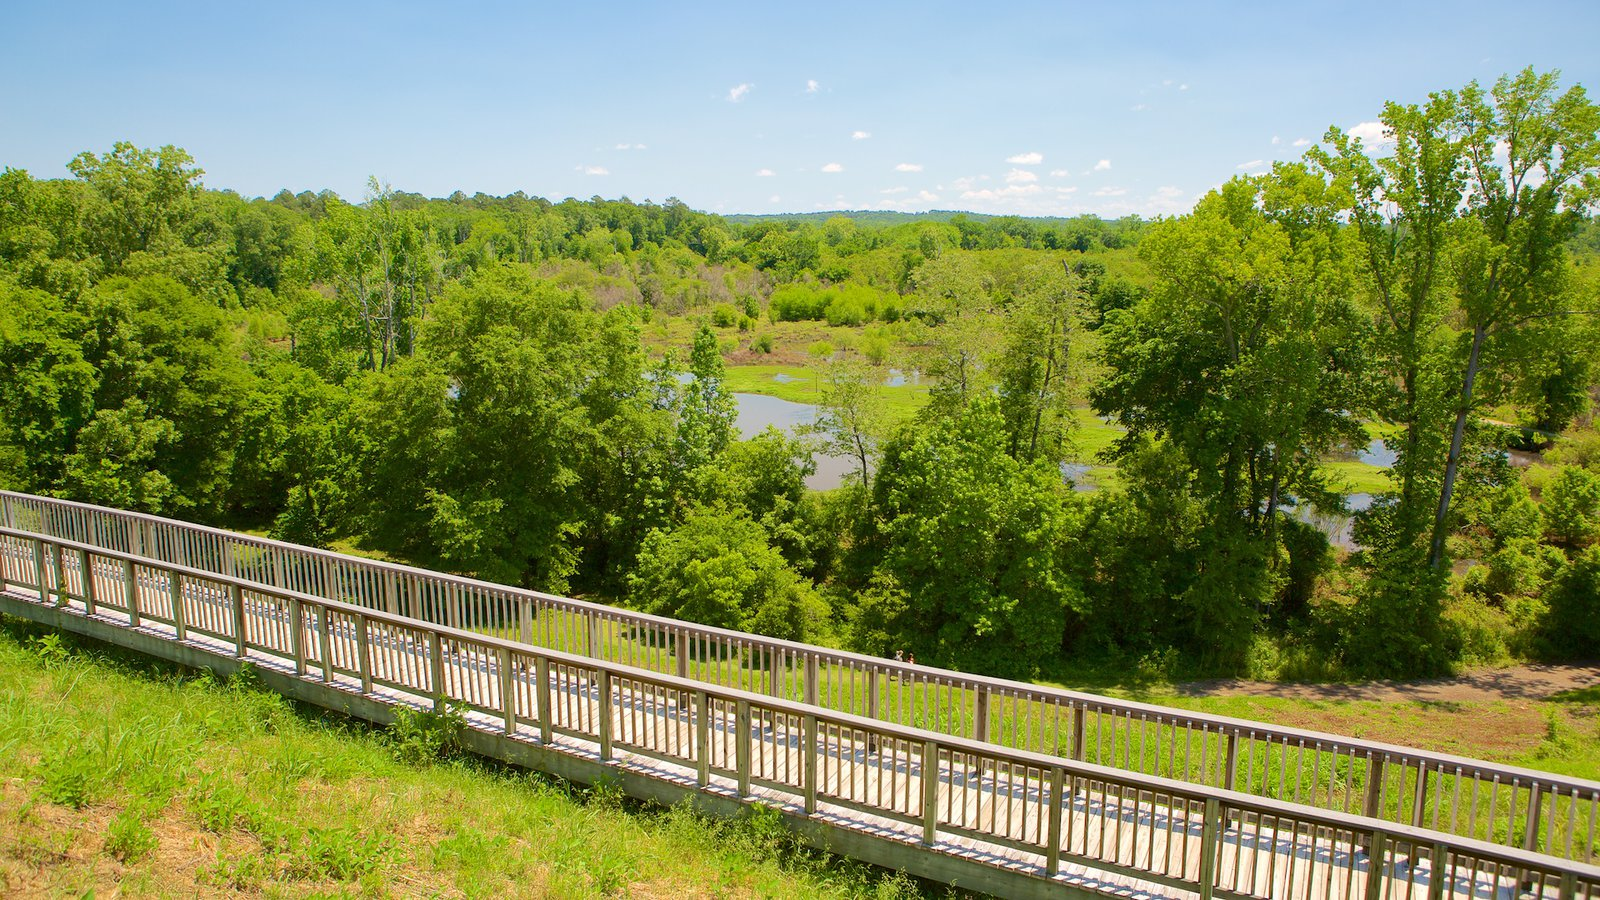 Ocmulgee National Monument which includes tranquil scenes